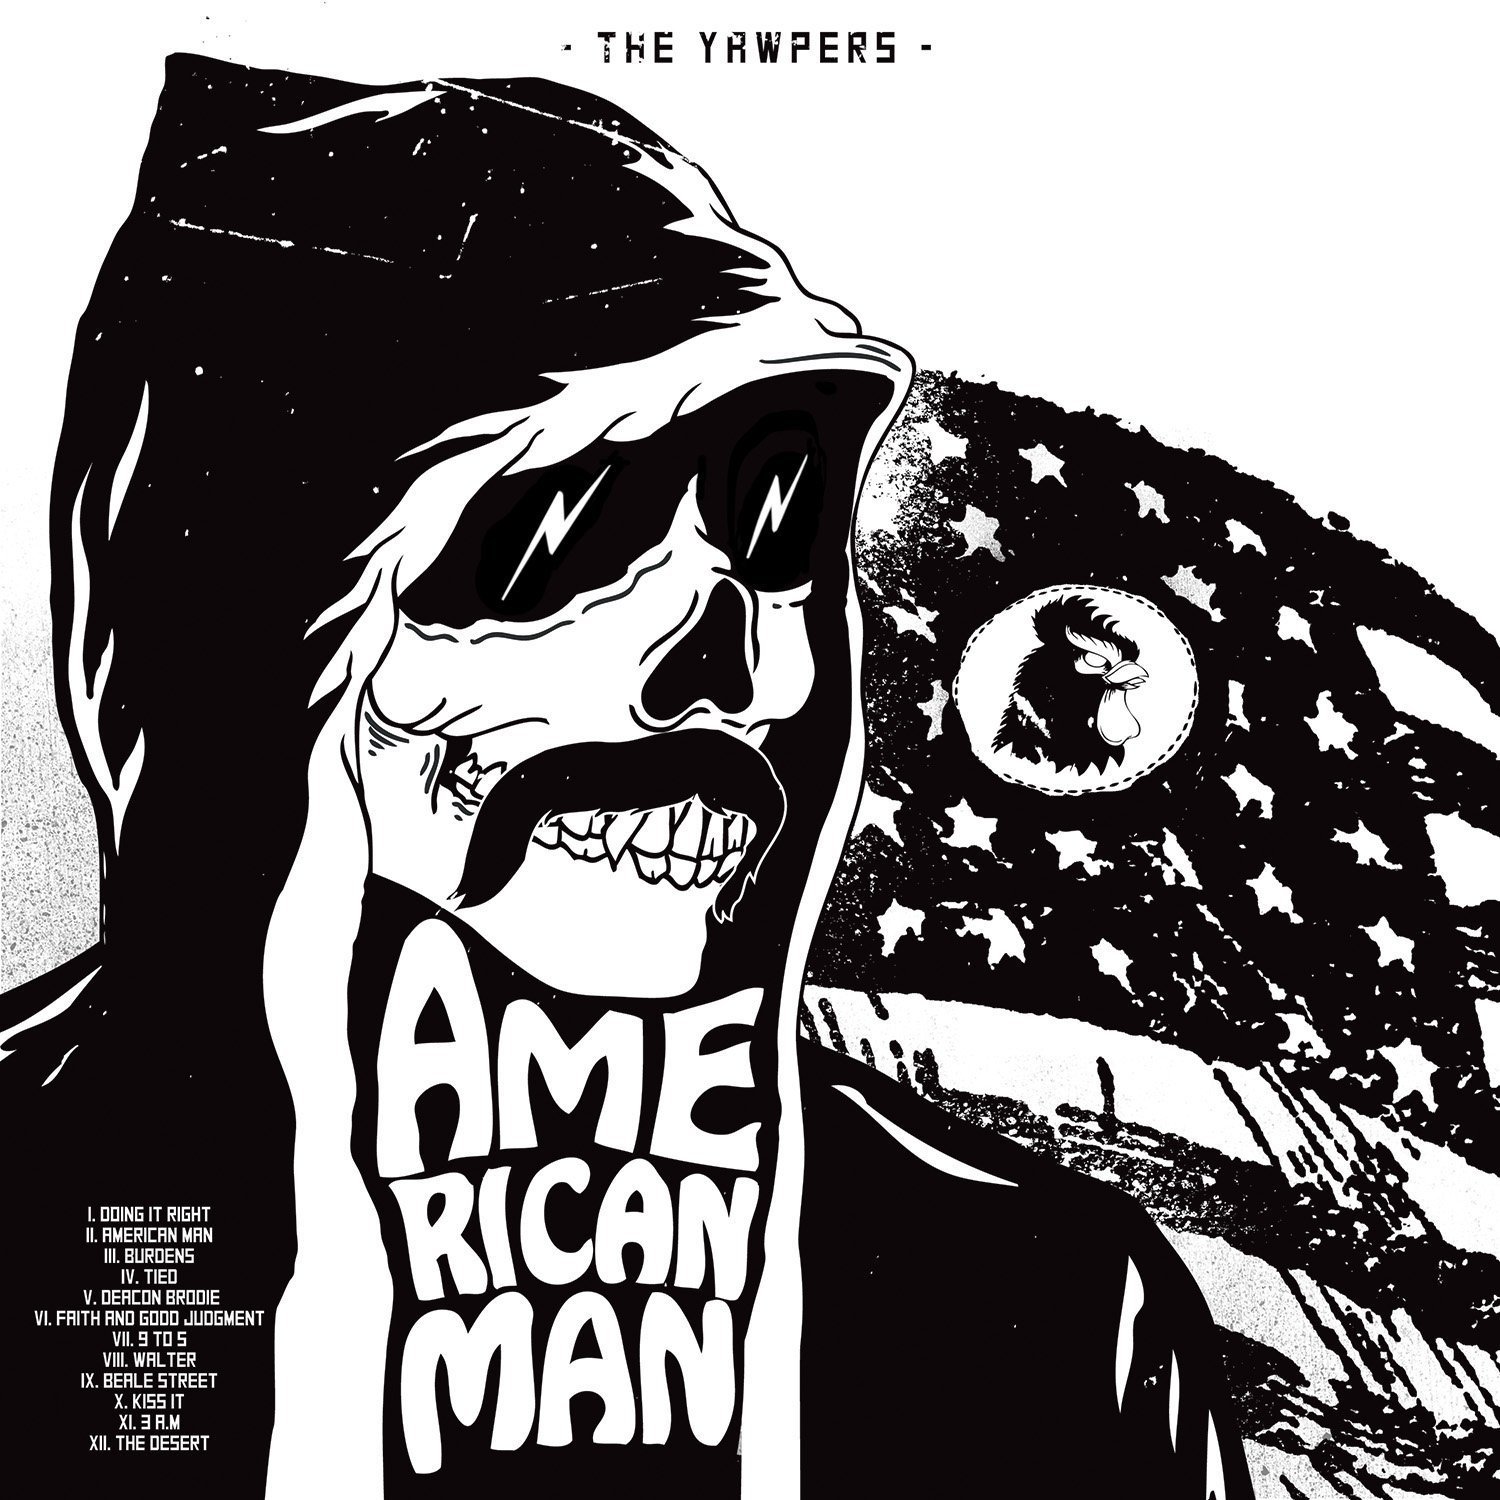 The Yawpers: American Man [Album Review]